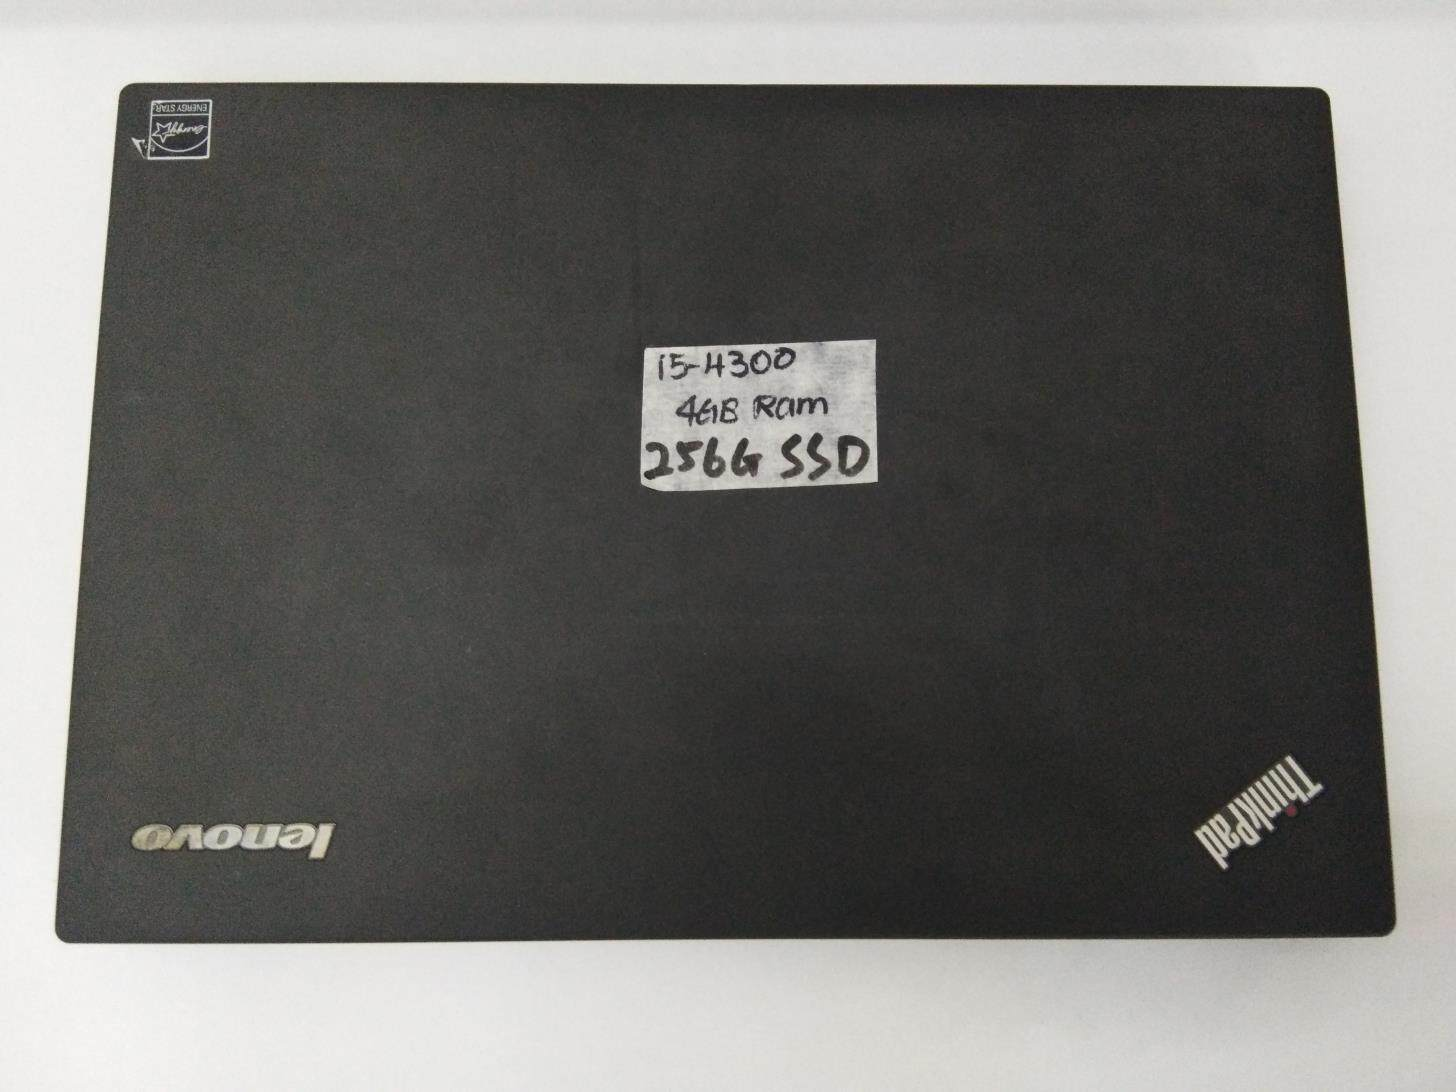 Lenovo Thinkpad x240 (i5-4300U/4GB/256GB SSD) - Refurbished Malaysia